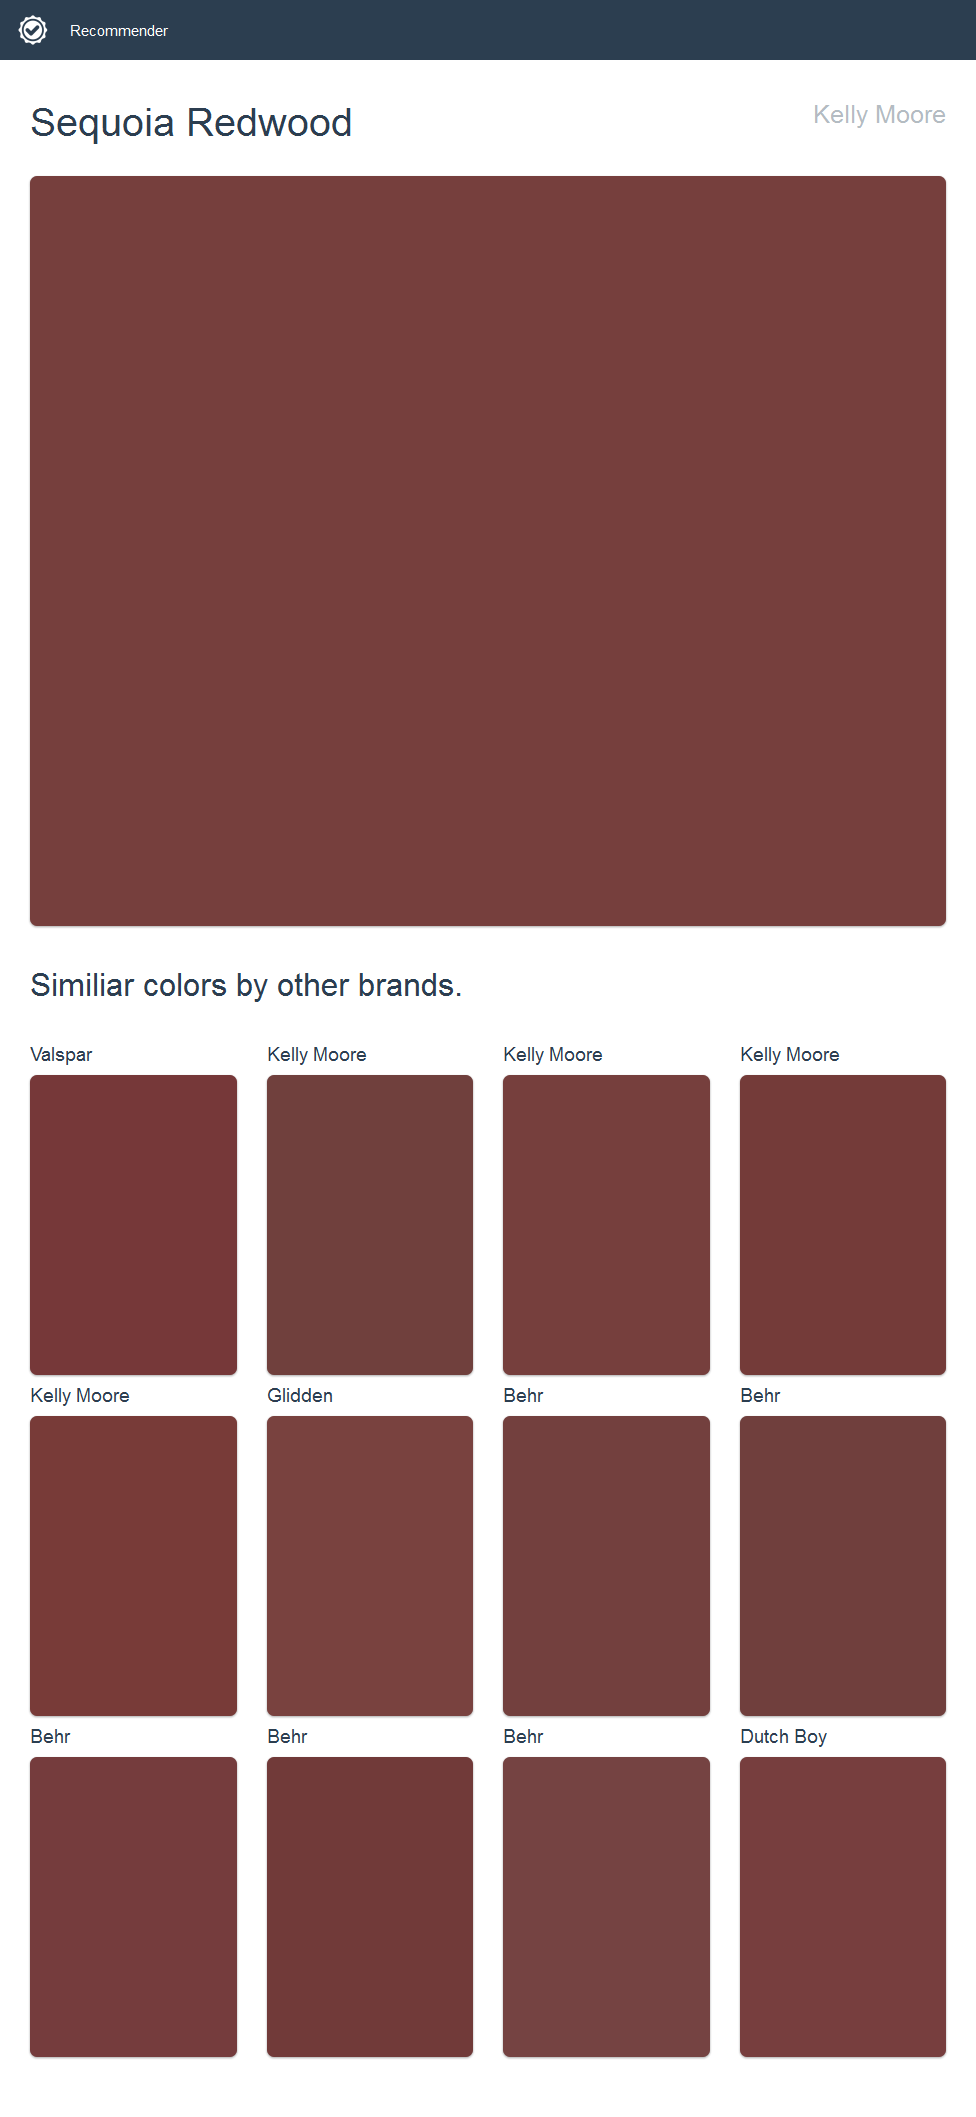 Sequoia Redwood Kelly Moore Click The Image To See Similiar Colors By Other Brands Kelly Moore Paint Glidden Paint House Paint Exterior